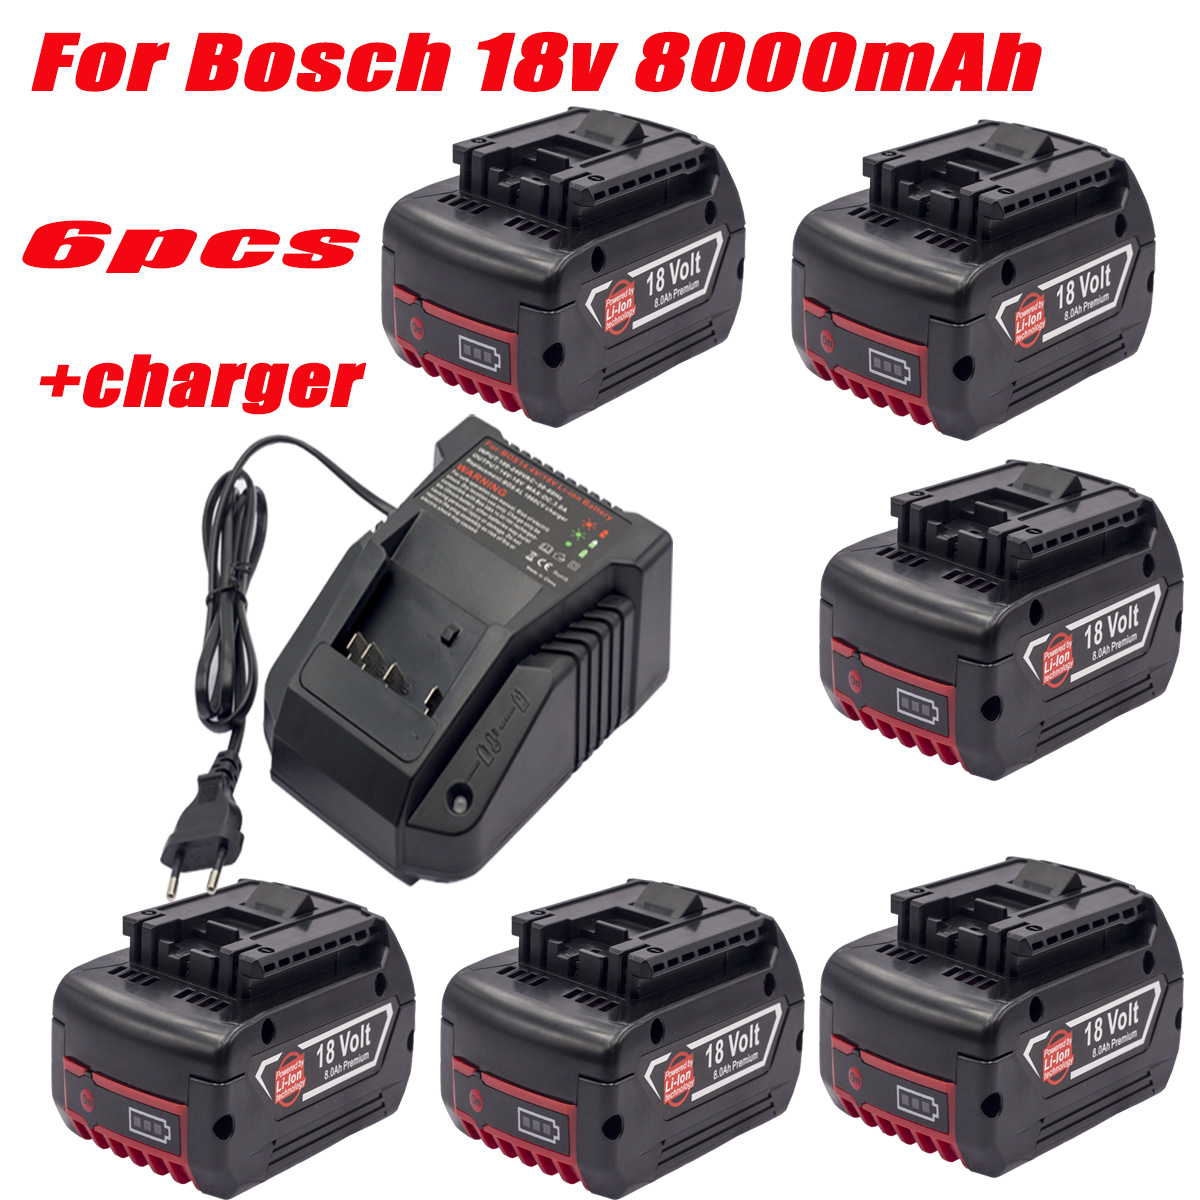 For Bosch Profession 18V Rechargeable 18650 Lithium Battery Pack 8.0A Compatible Power Tool Battery BAT609 BAT610 BAT618 BAT619